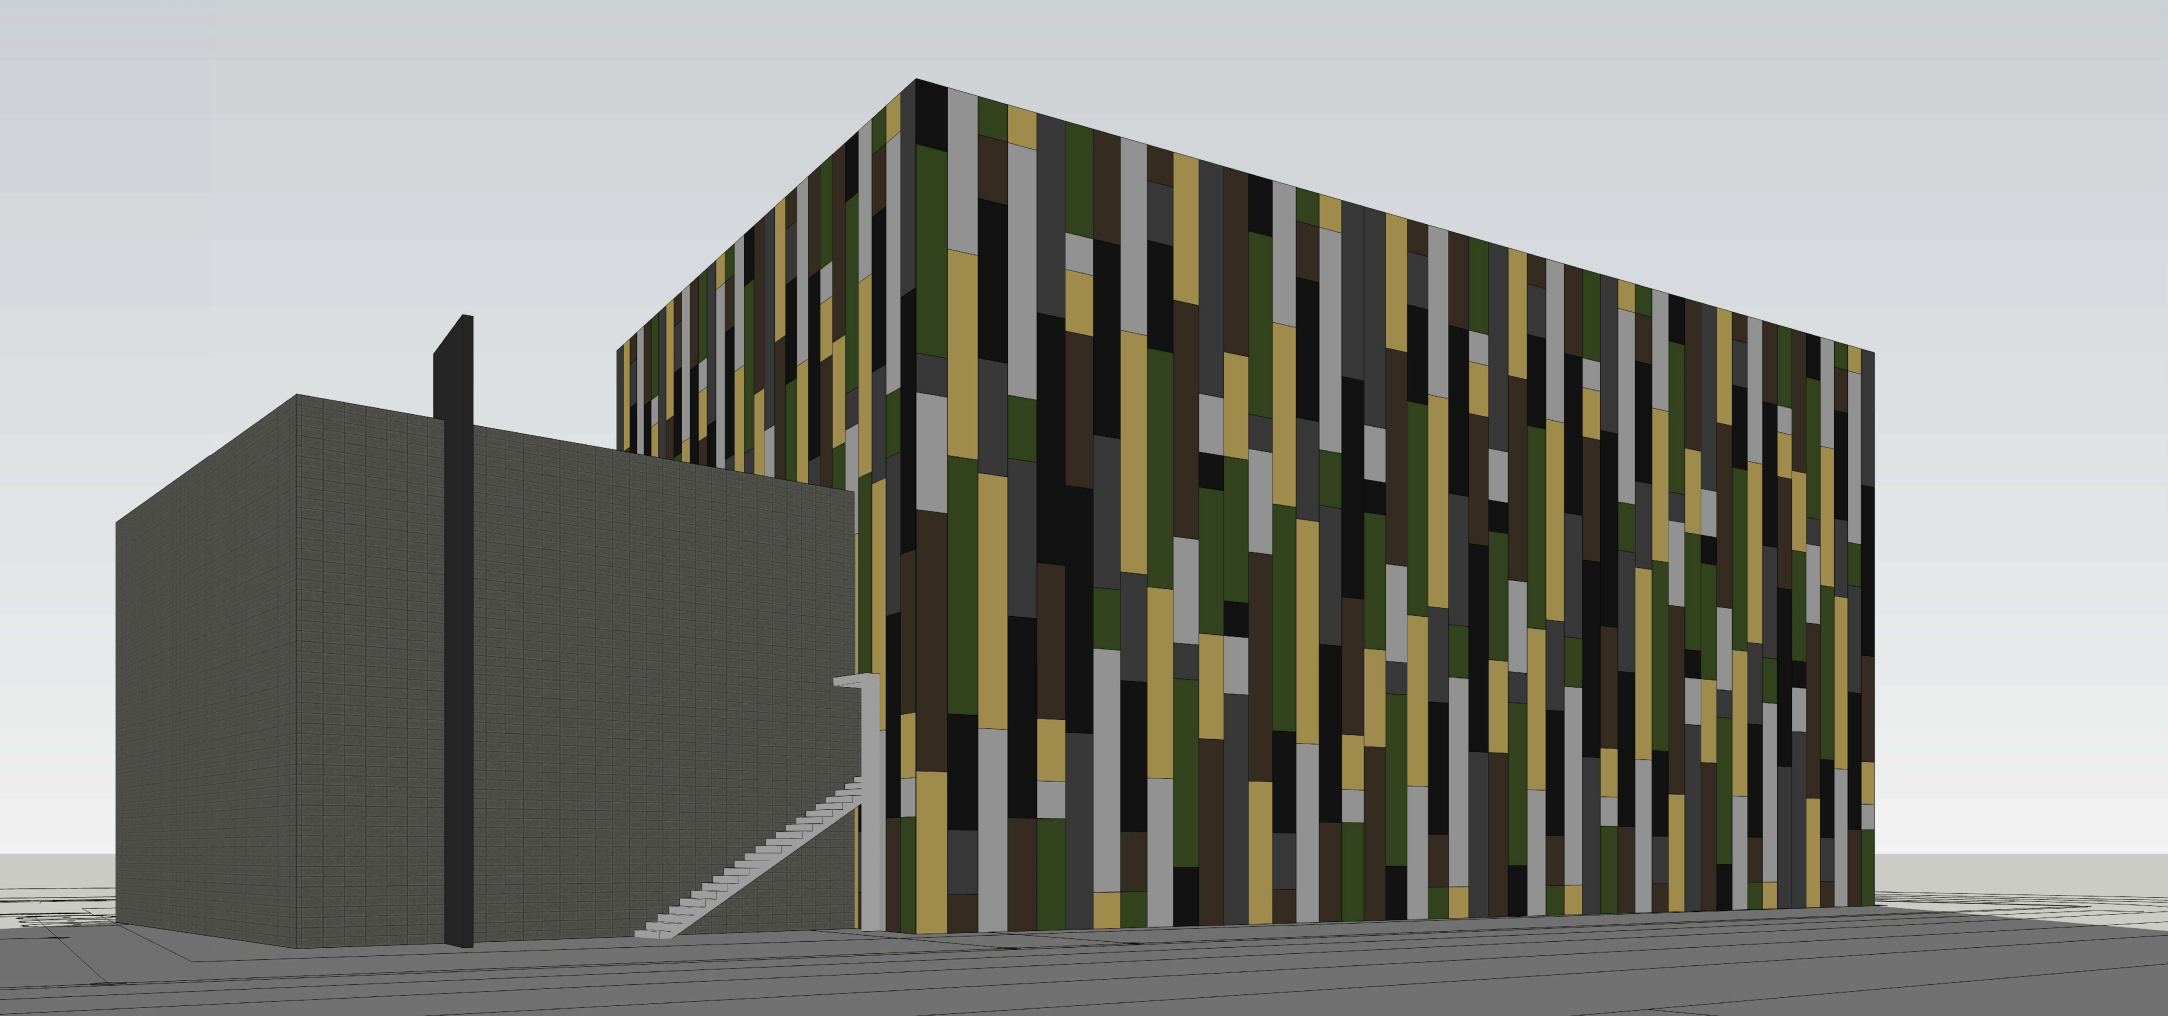 Velocity Rock Gym. Designed by Mateu Architecture.